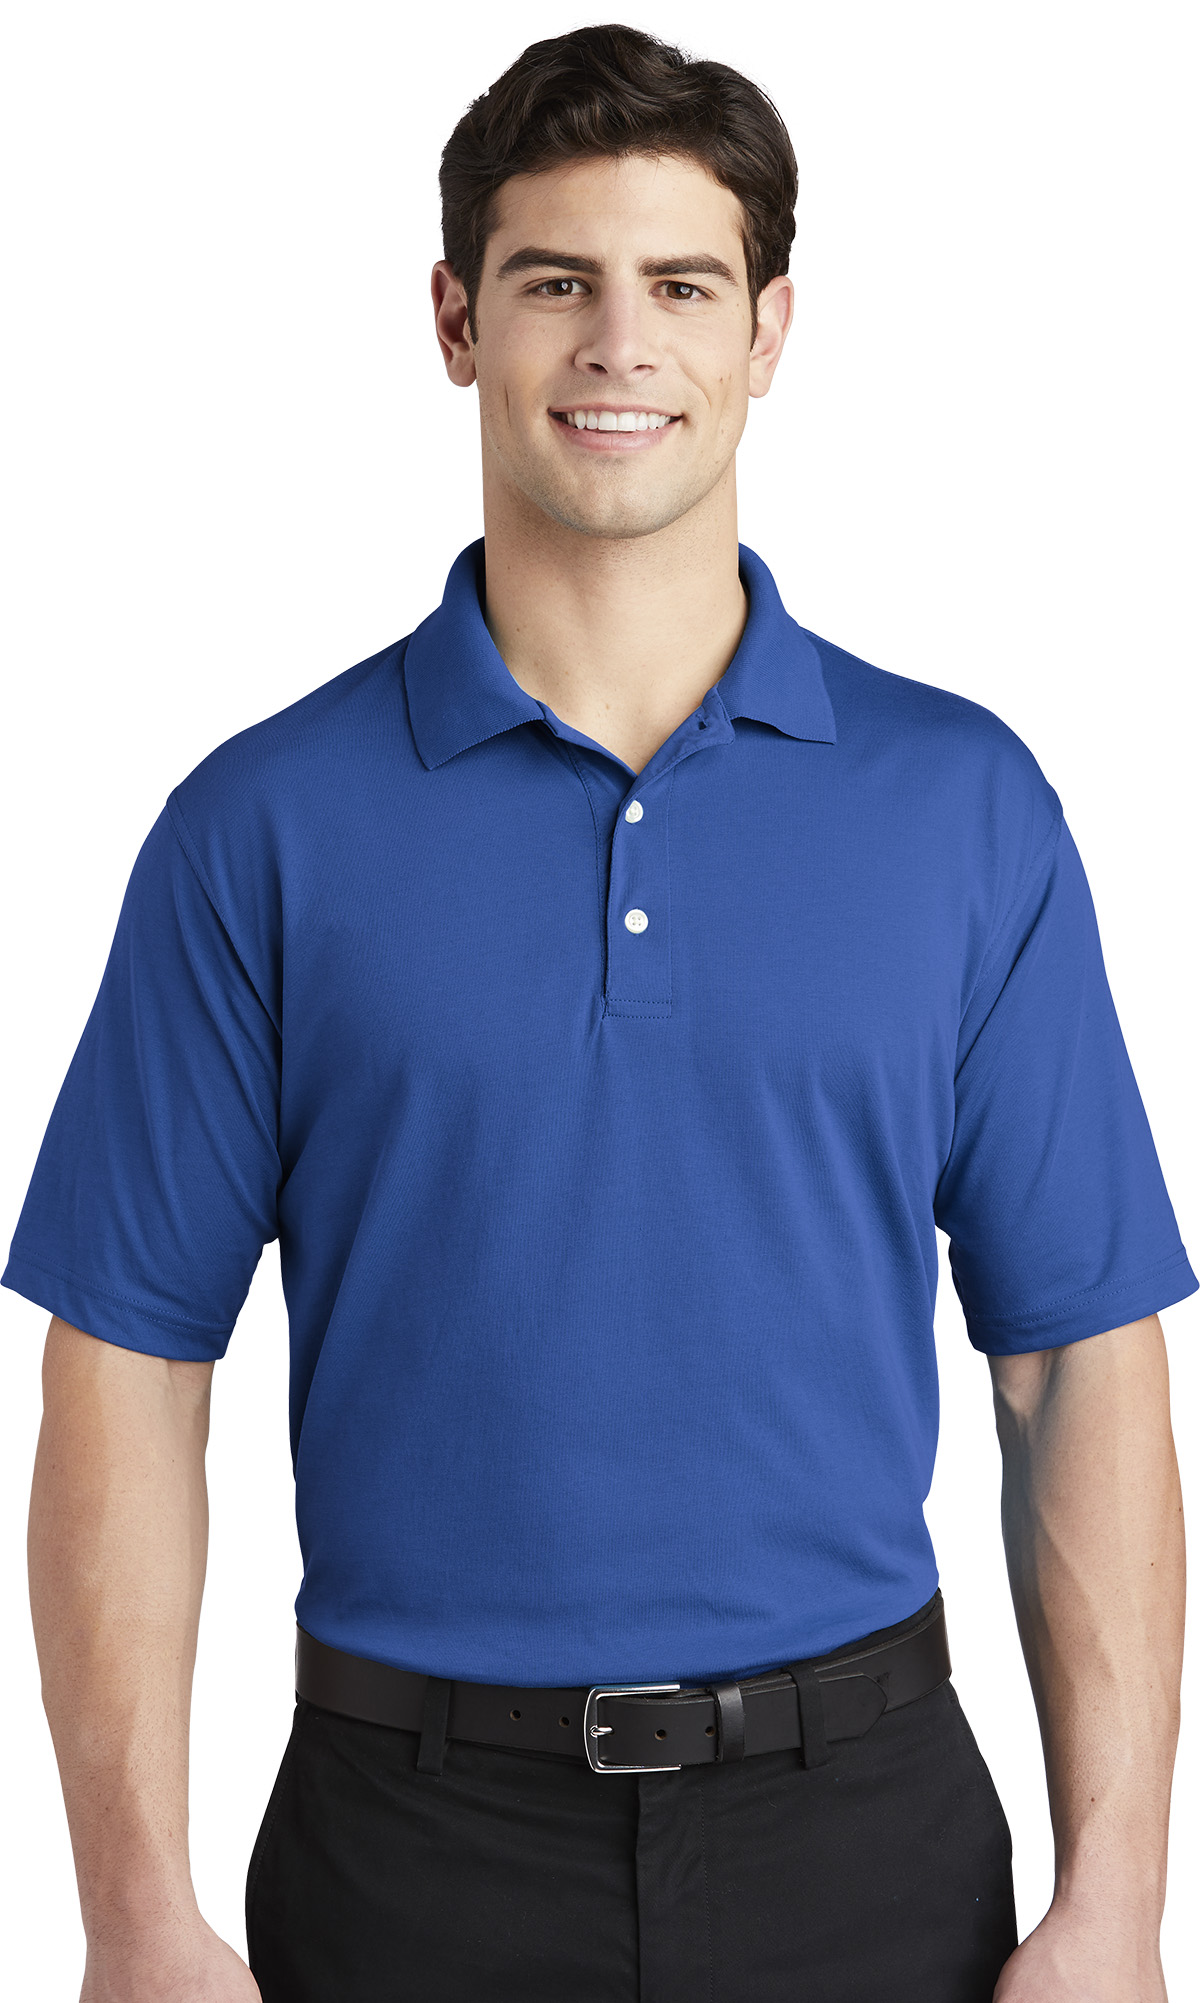 Queensboro Embroidered Men's Silk Touch Pique Polo